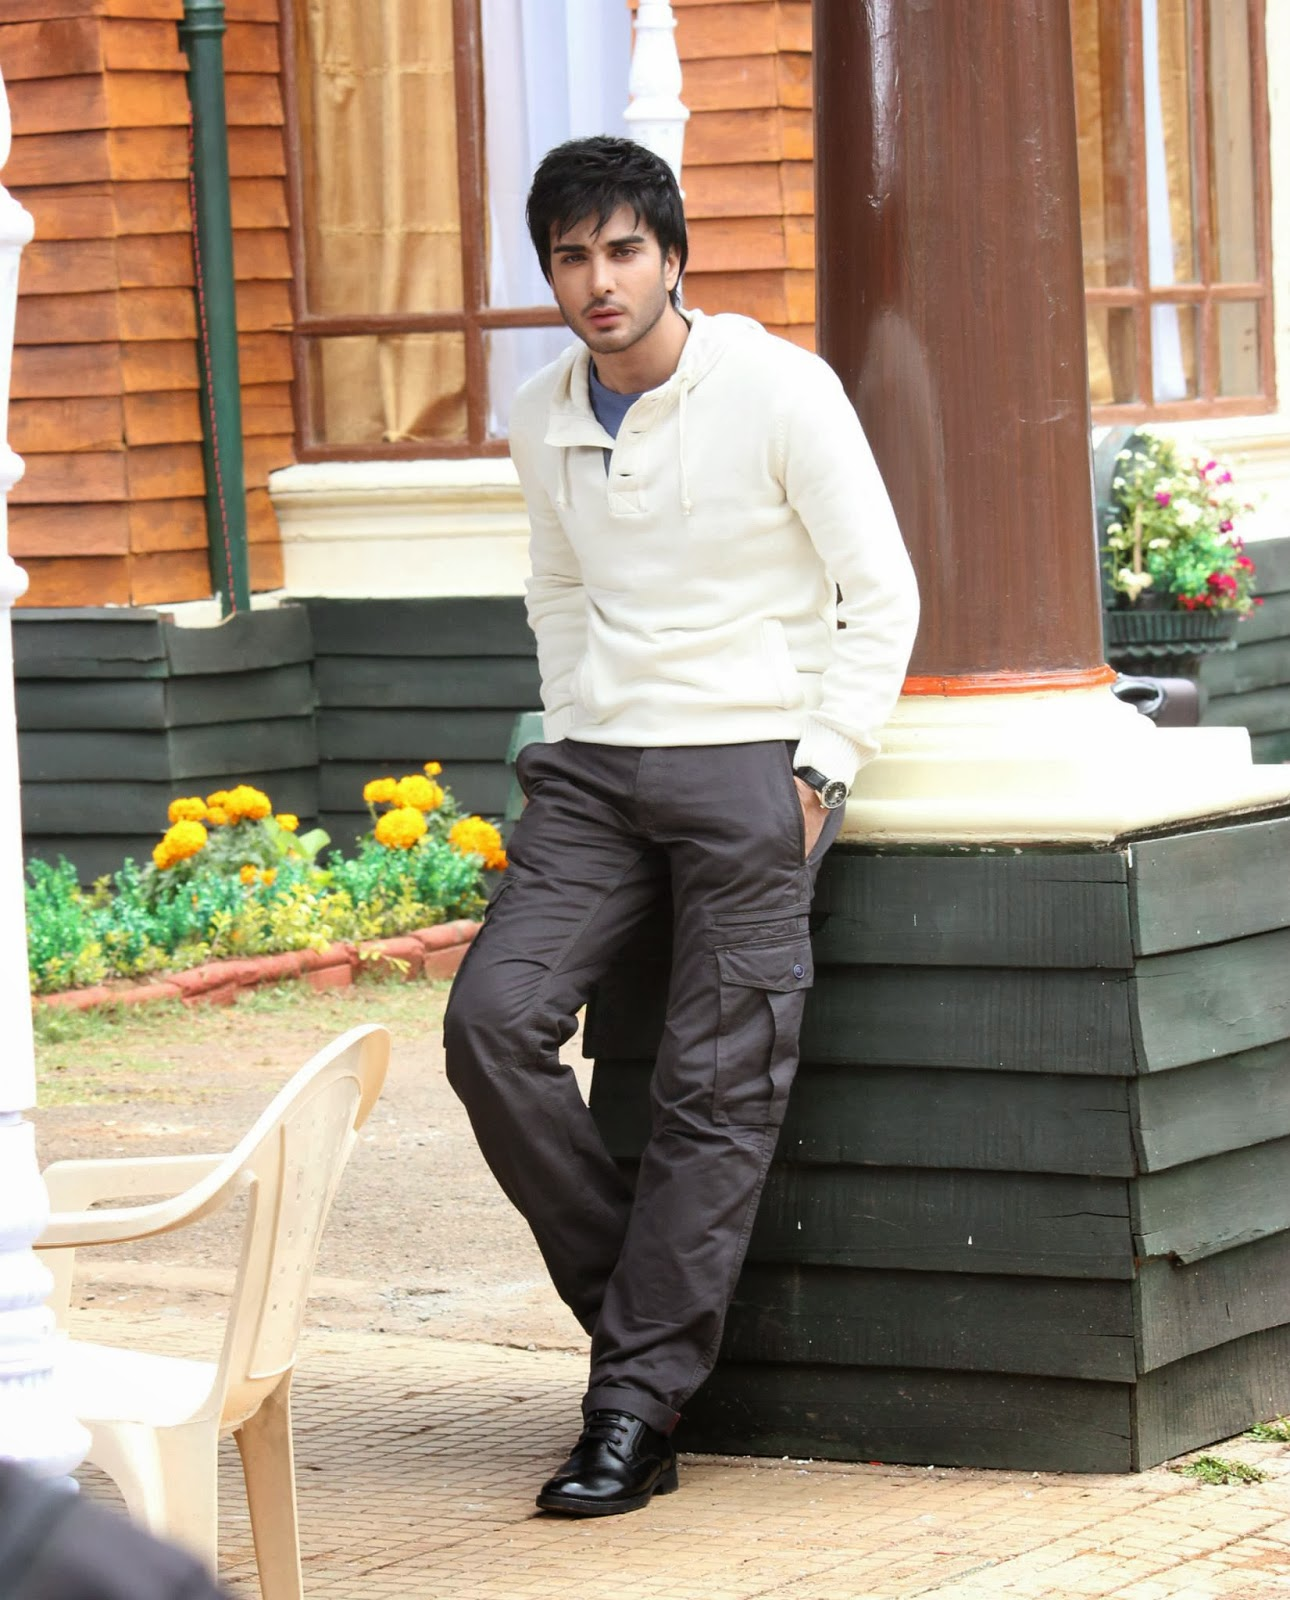 Unique Wallpapers: Imran Abbas Hot Wallpapers 2013 HD Free